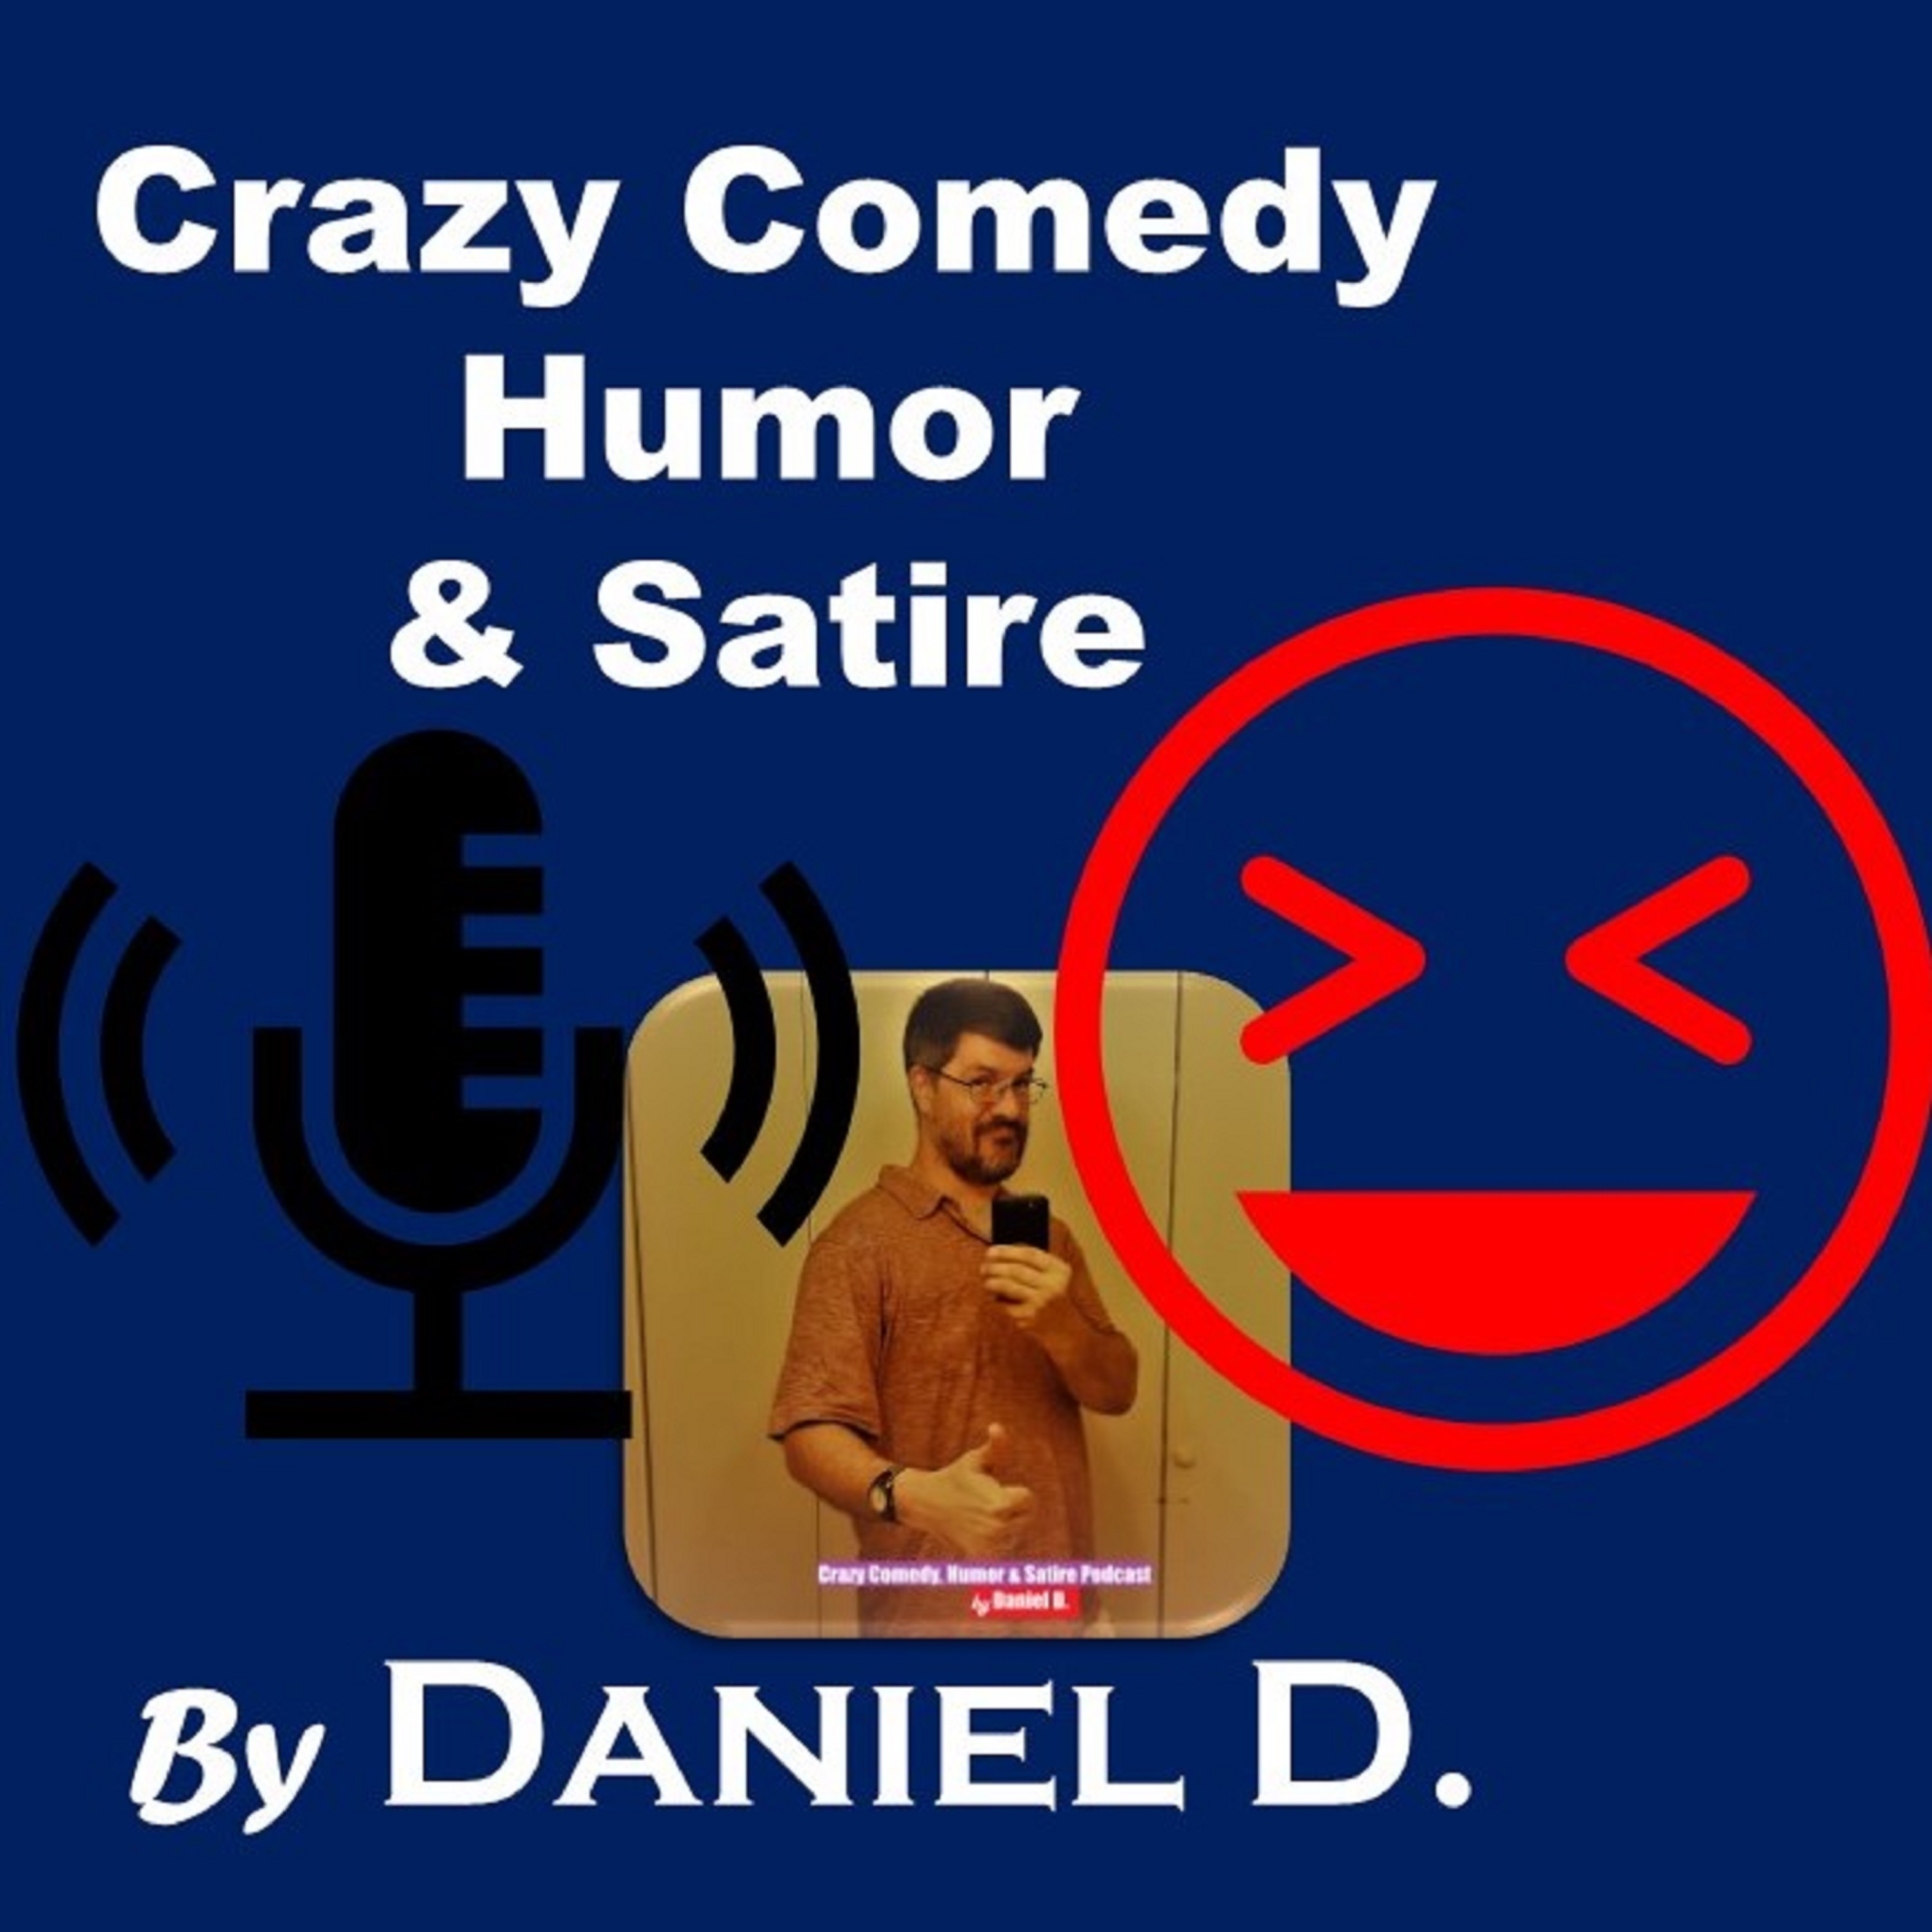 Artwork for Episode 9 of The Crazy Comedy, Humor & Satire Podcast